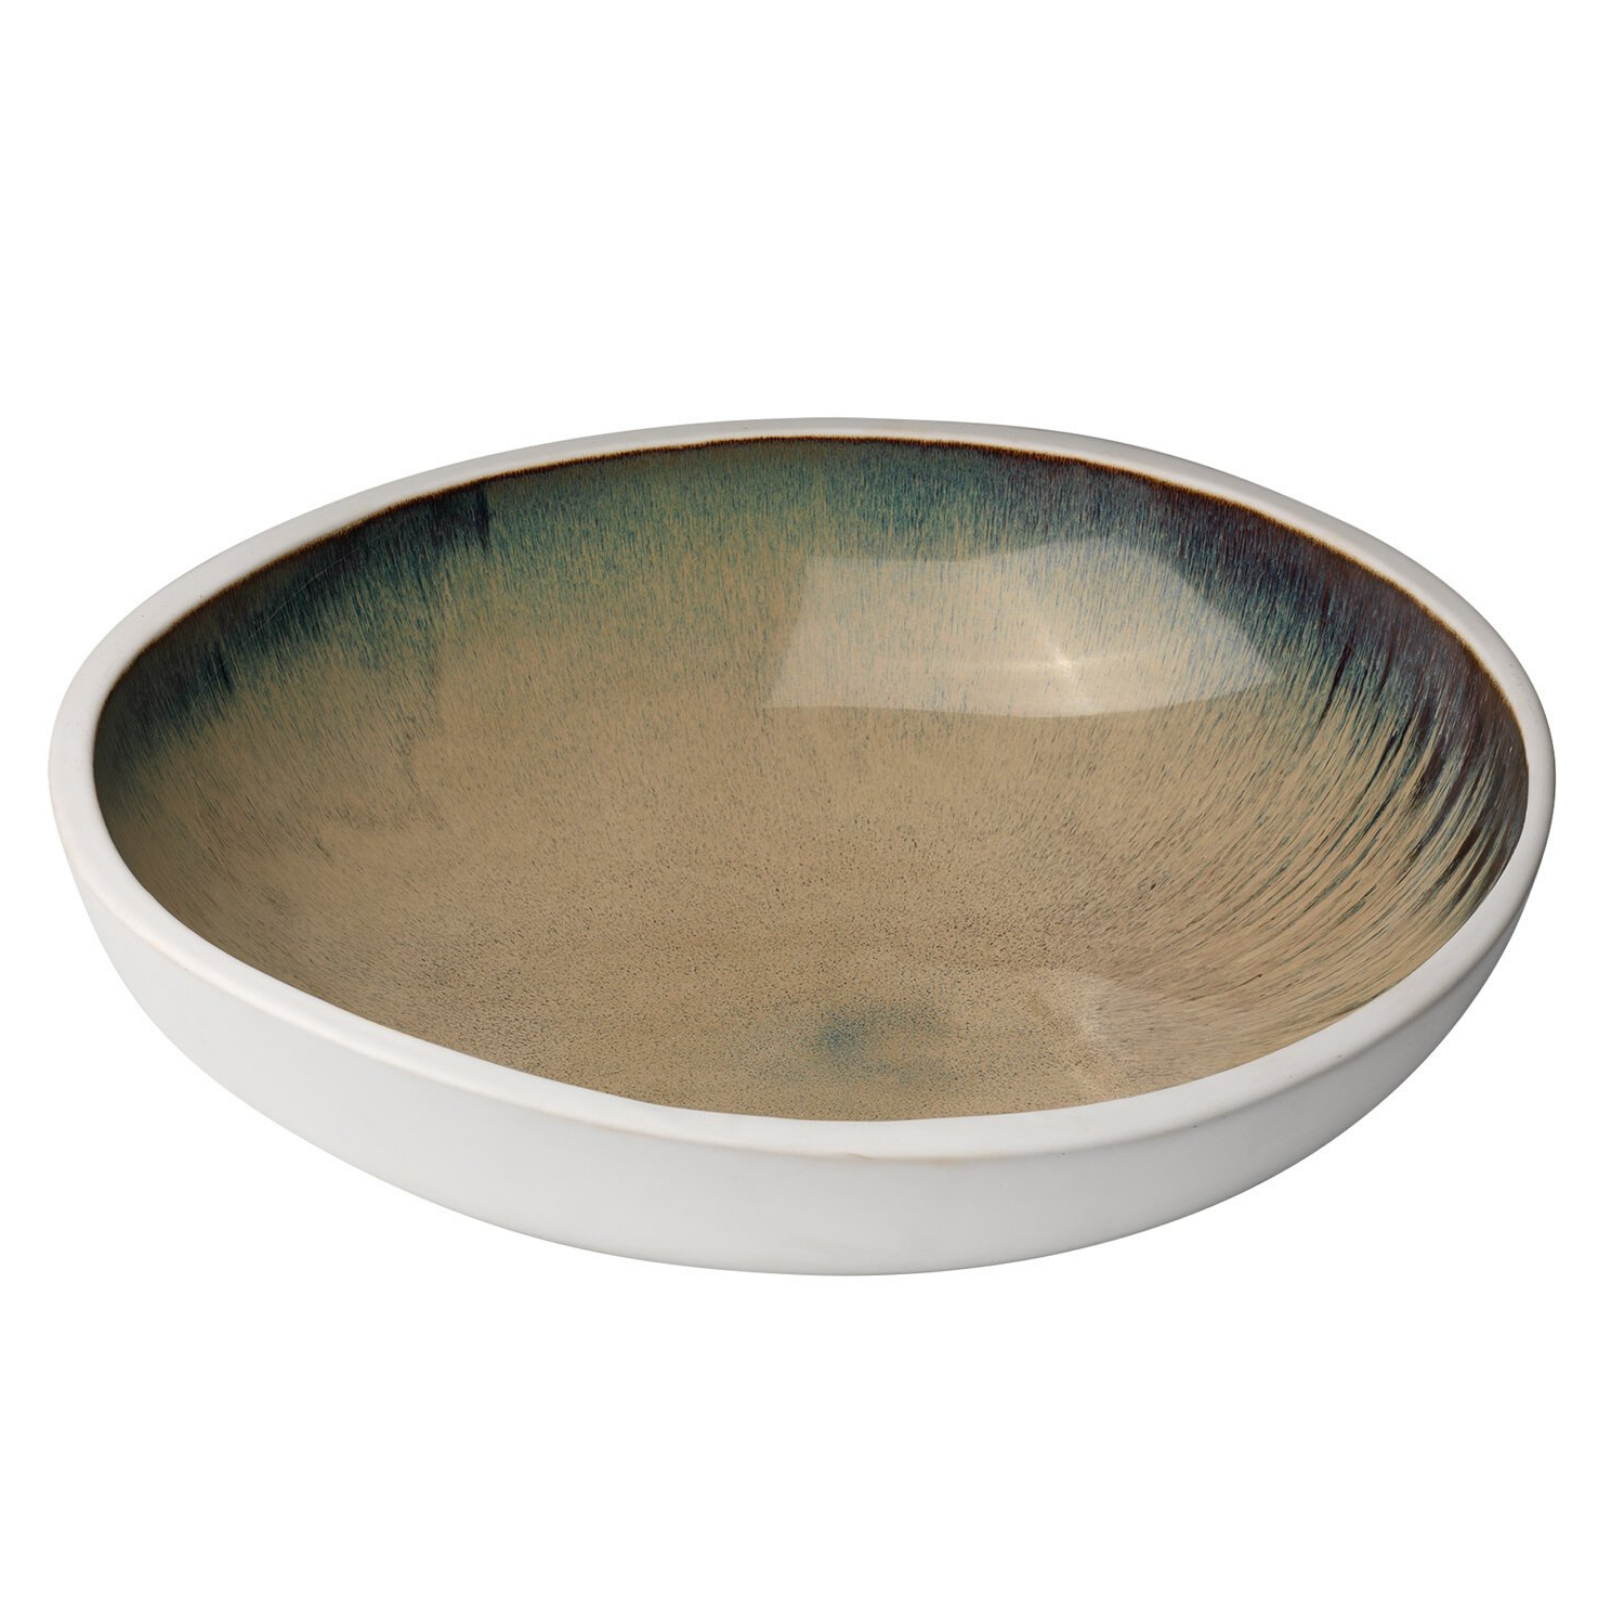 Mykonos Large High Rim Bowl